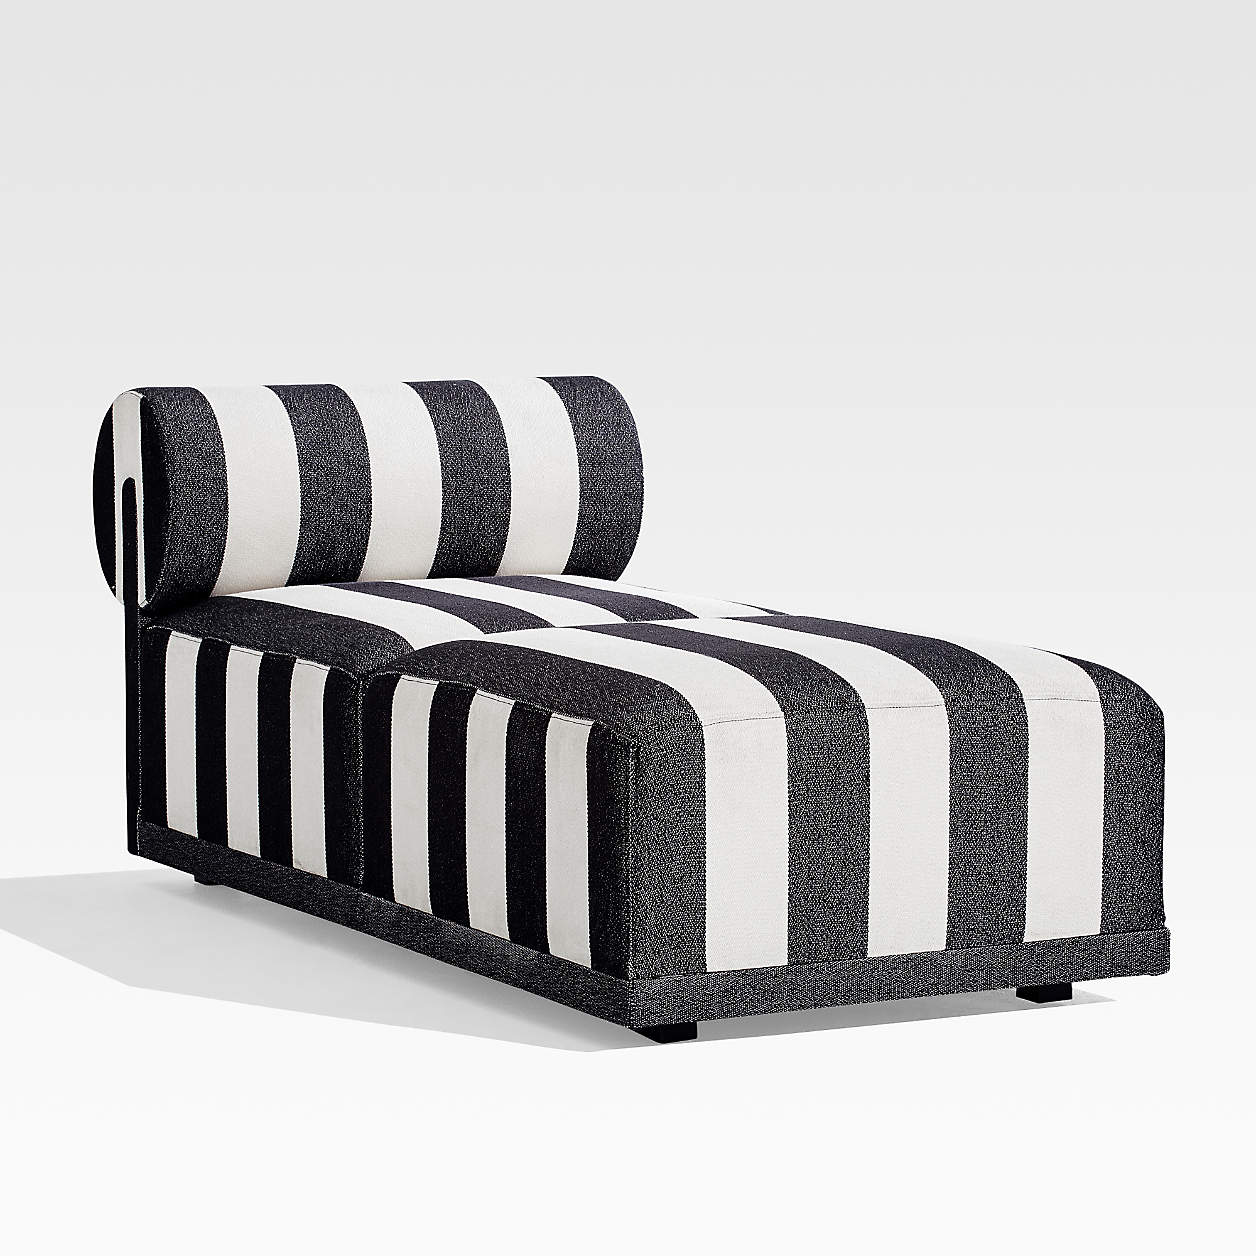 cerca-striped-lounge-chair-with-ottoman